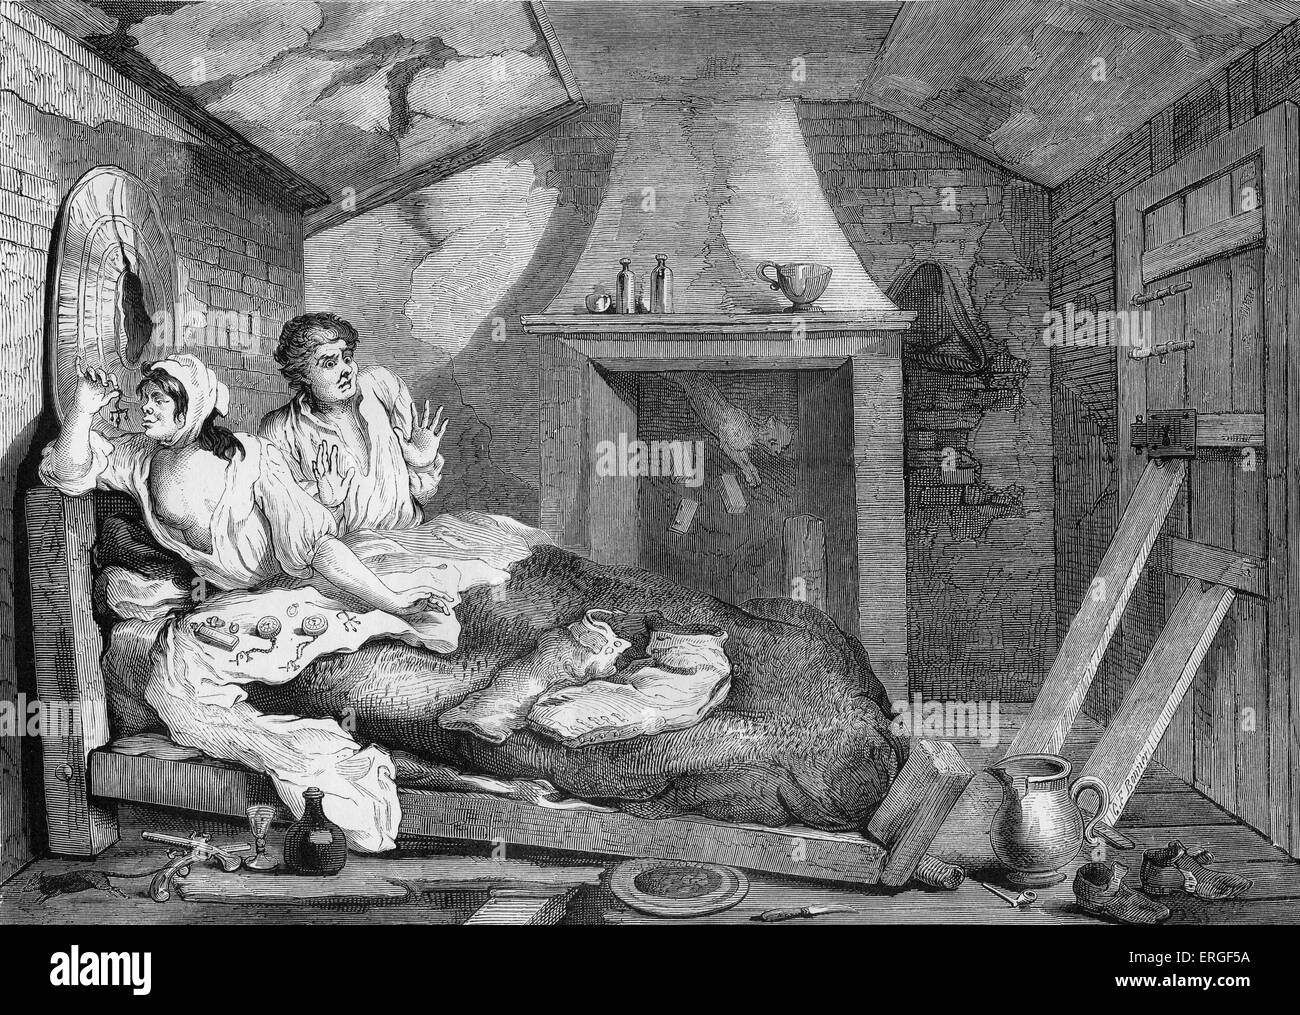 Industry and Idleness by William Hogarth. Plate VII - Thomas Idle returned from sea. WH: English artist - 1697  - Stock Image